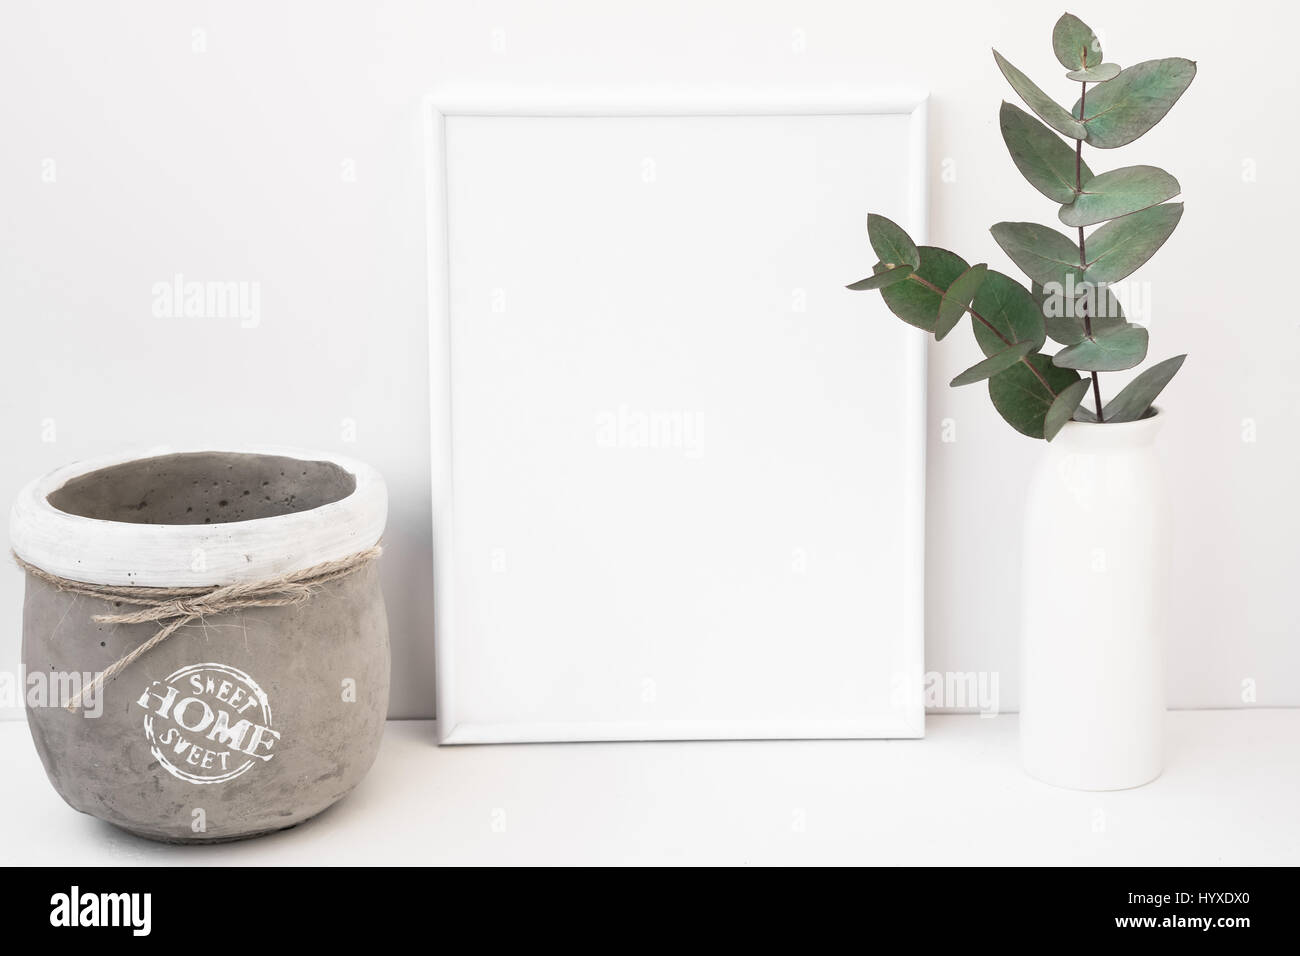 White background frame mockup, green eucalyptus in ceramic vase, cement pot, styled image for social media, product - Stock Image